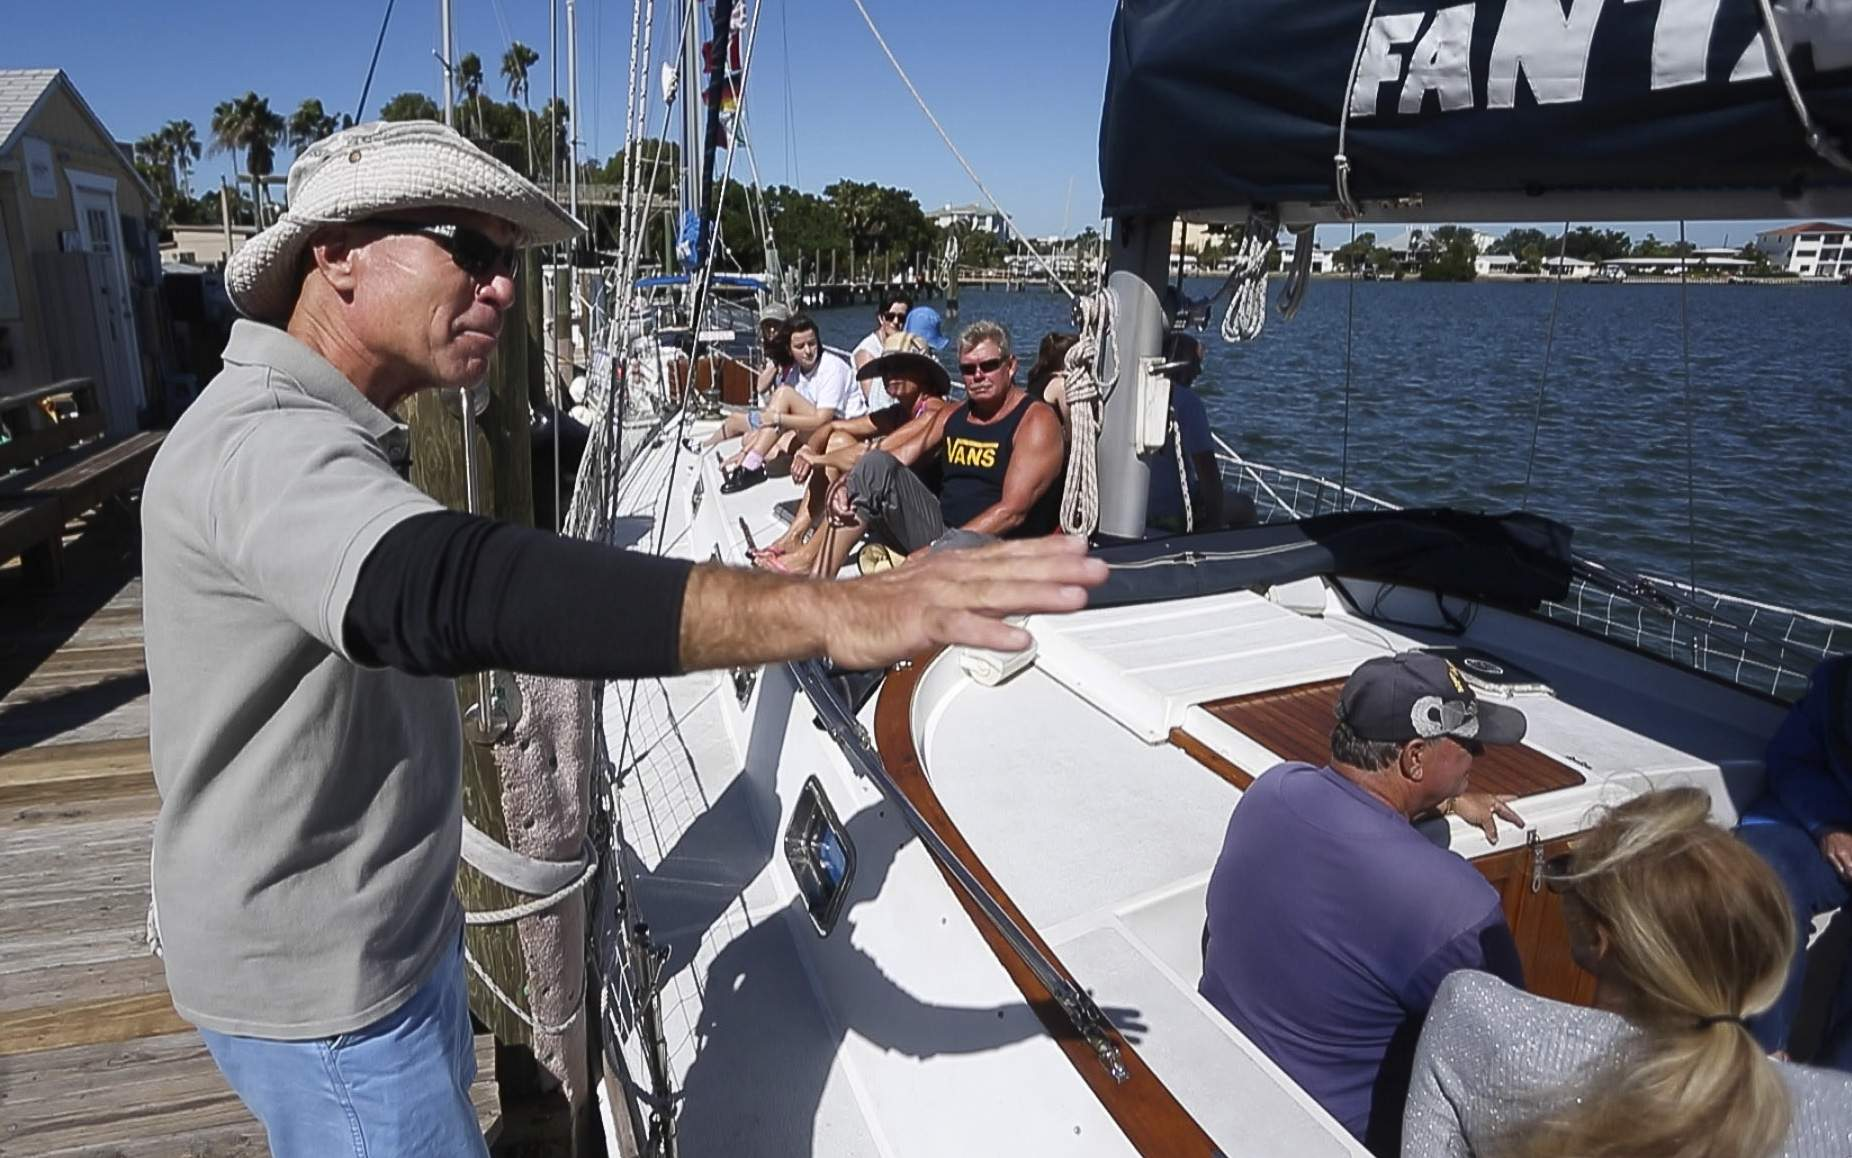 Murky waters: Chartering the wrong boat can have tragic